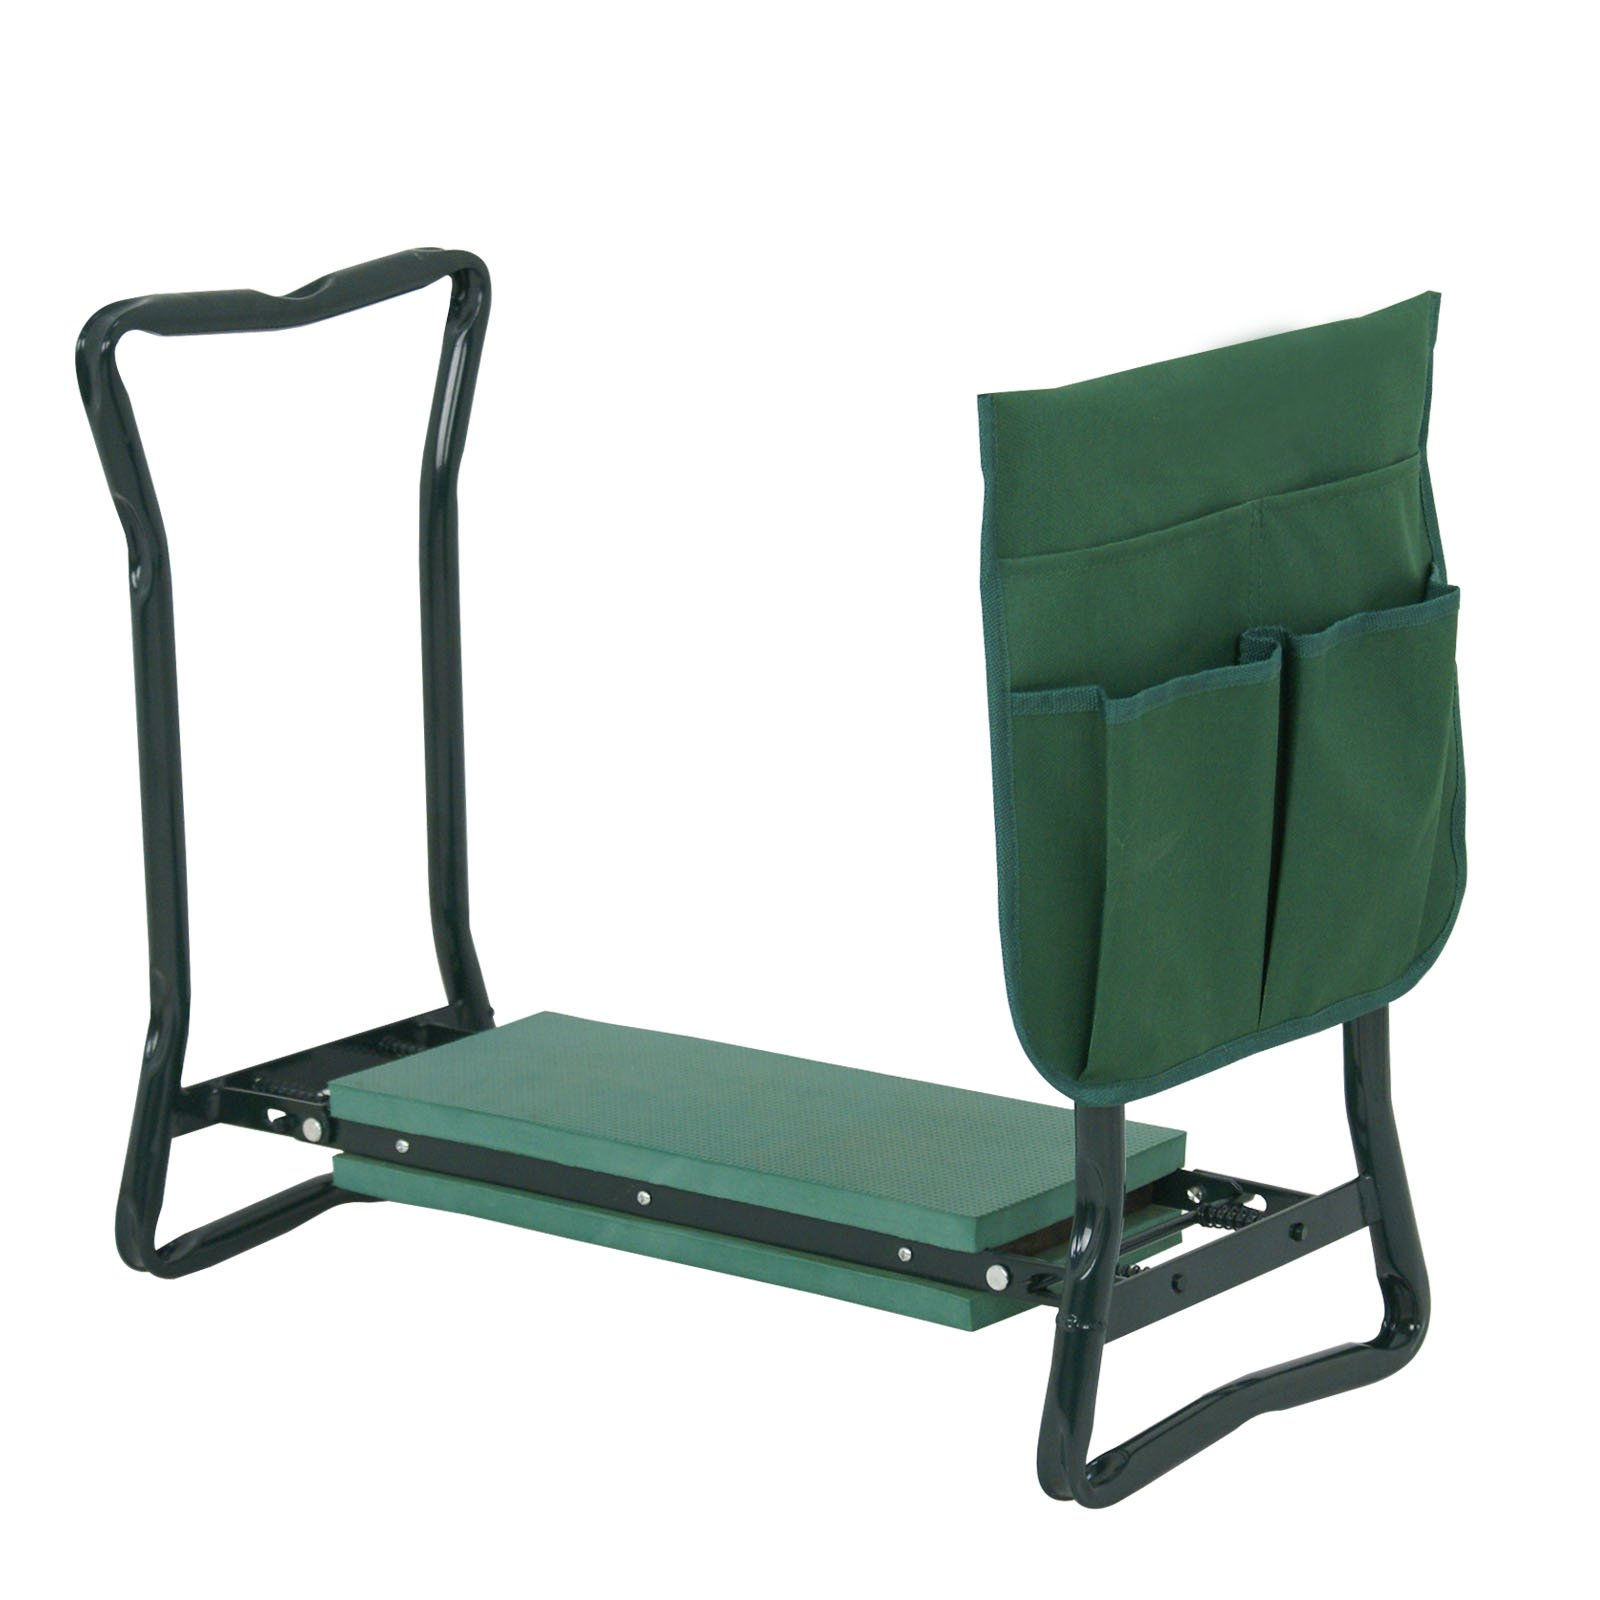 LEMY Garden Kneeler Seat Multiuse Portable Garden Bench Garden Stools Foldable Stool with Tool Bag Pouch EVA Foam Pad (24 3/8'' x 10 7/8'' x 19 1/8'')